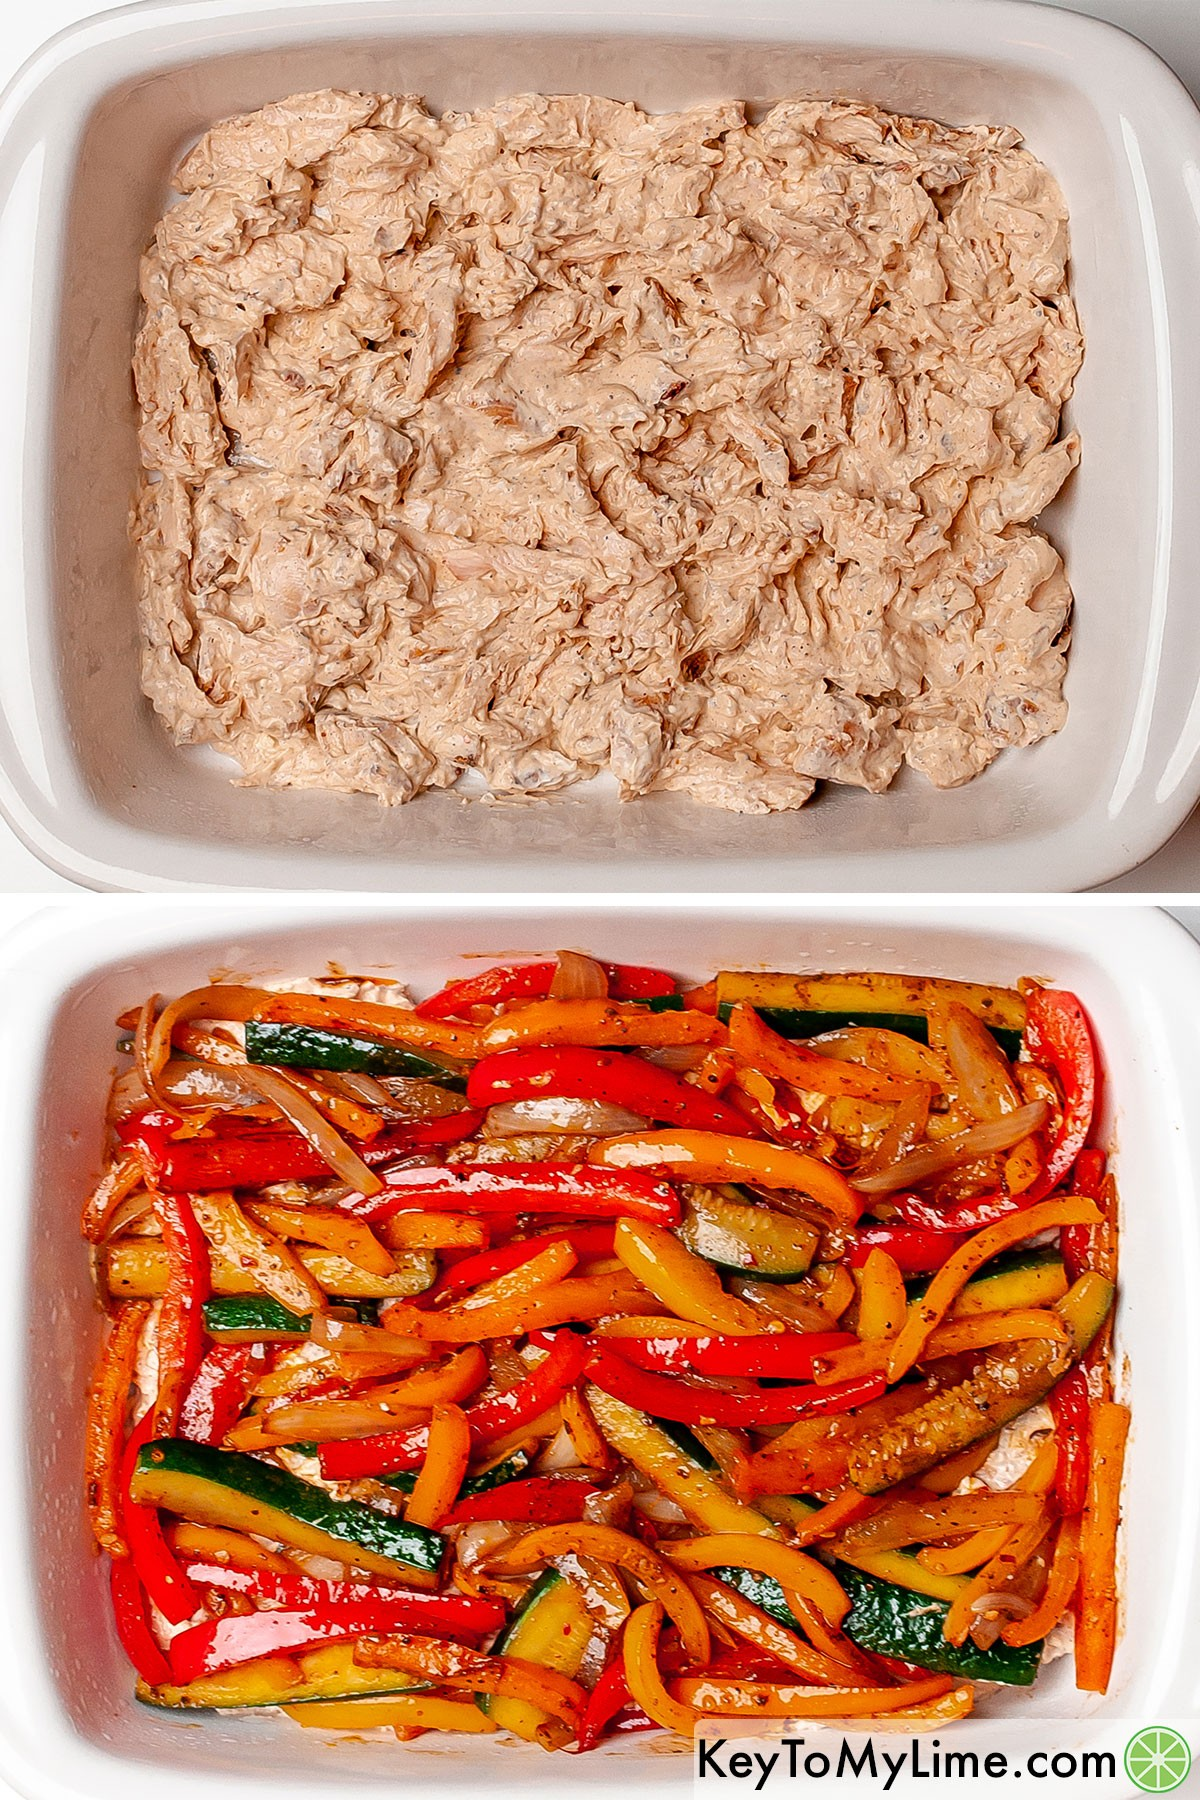 Layering the creamy chicken and sliced vegetables in a baking dish.